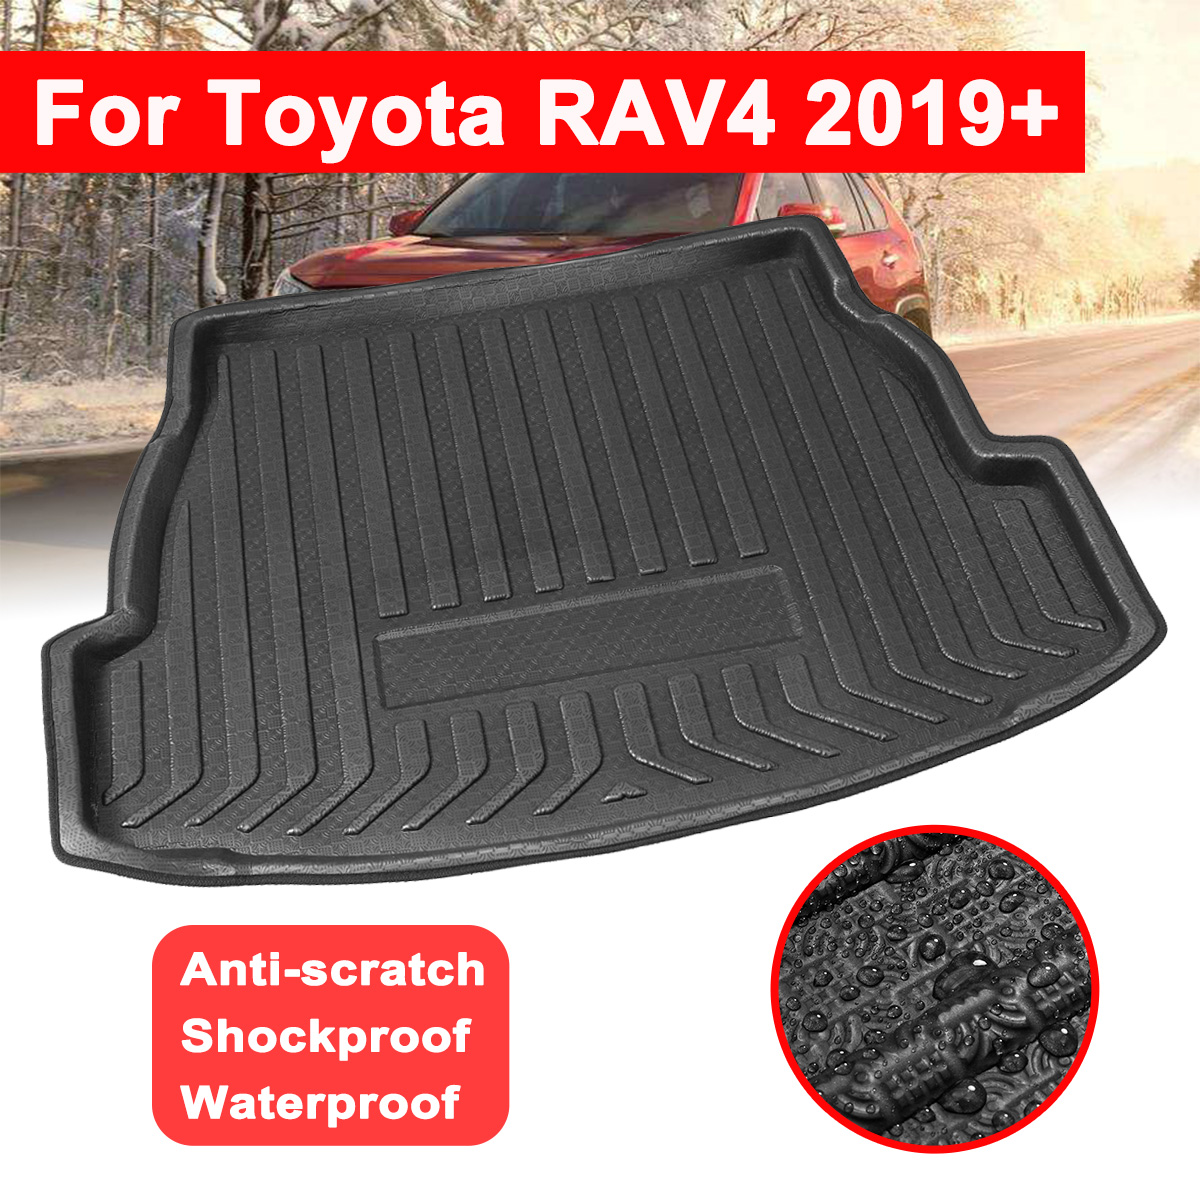 Mud-Protector Luggage-Tray Cargo-Mat Floor-Carpet Toyota Rav4 Boot-Liner Car-Accessories title=